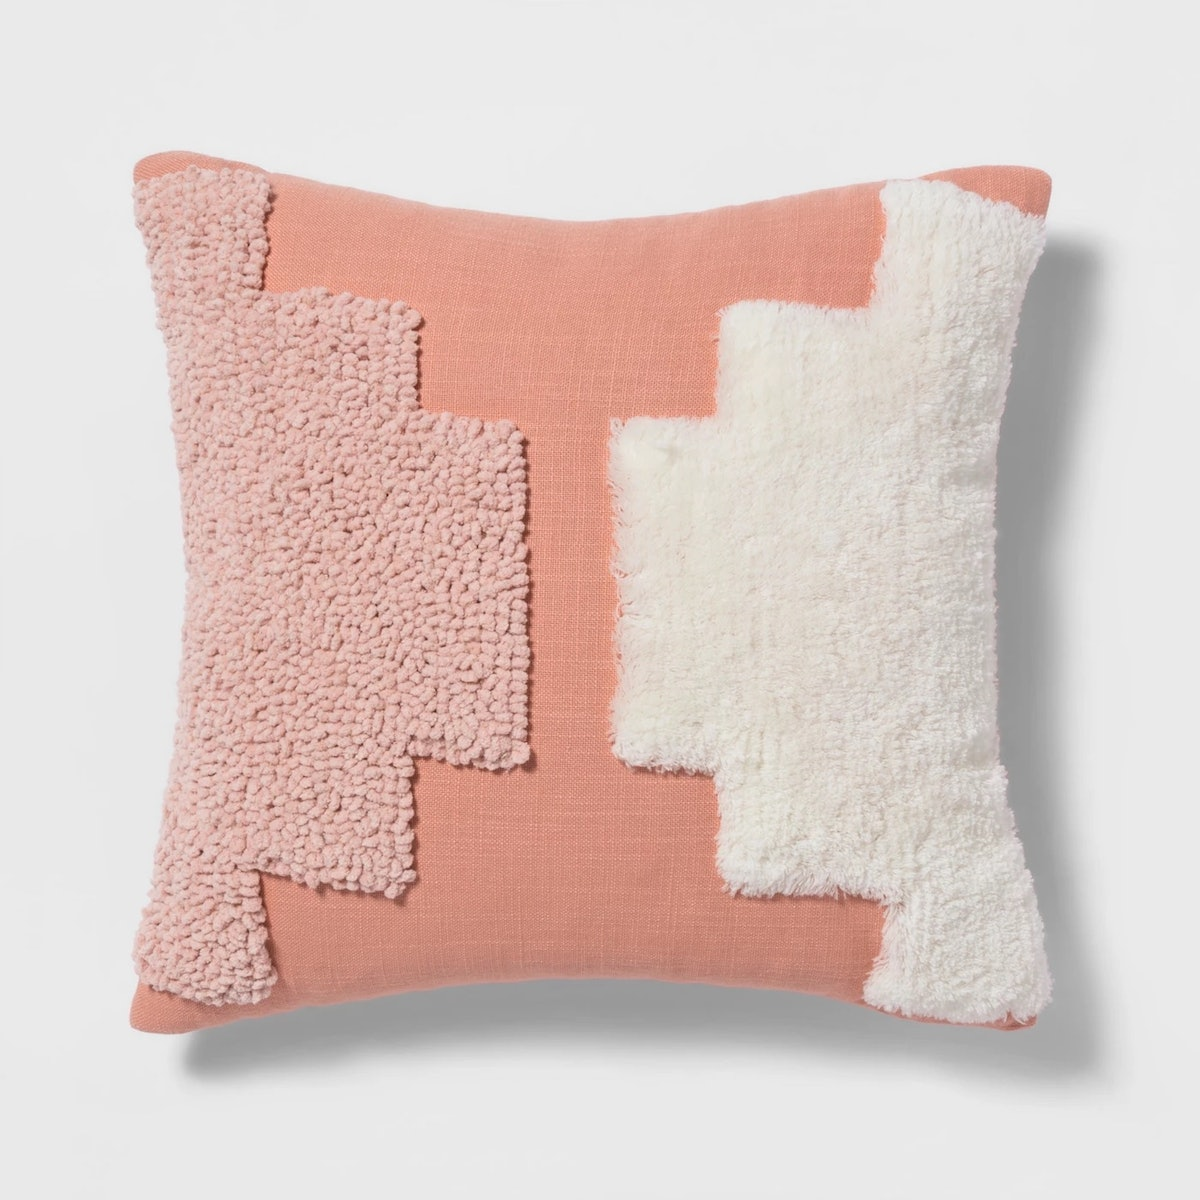 Tufted Square Throw Pillow Coral - Project 62™